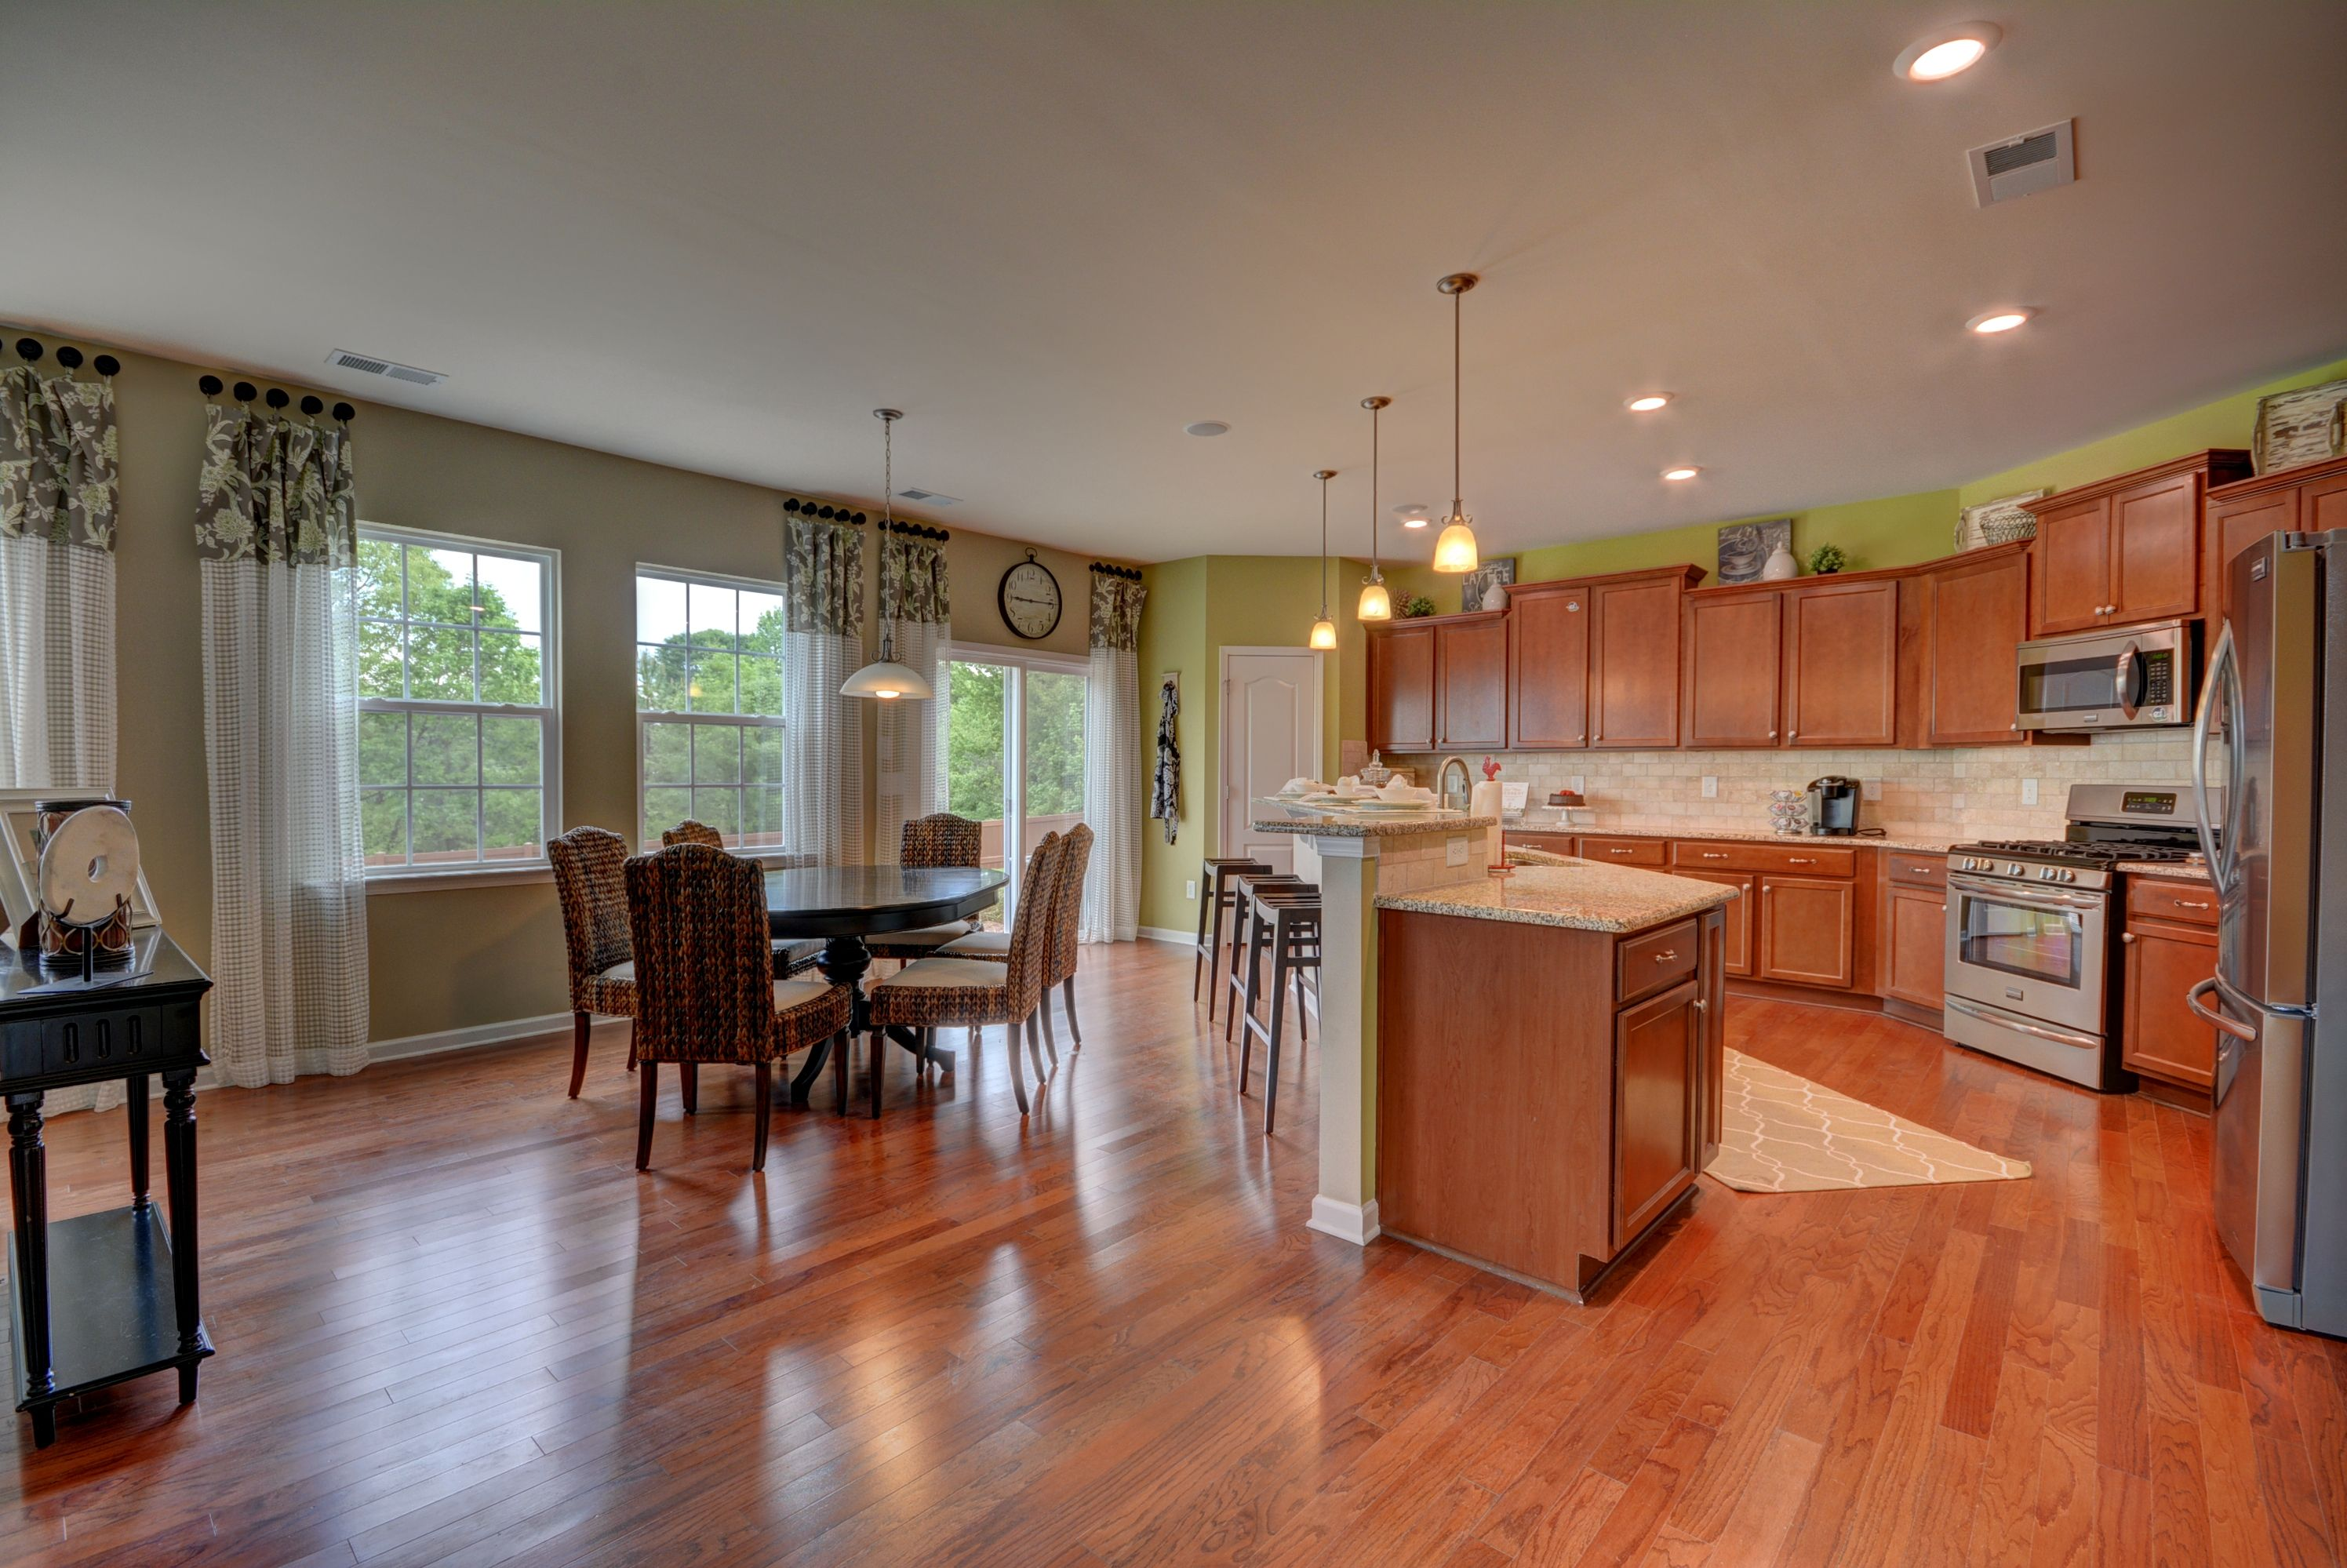 We re big fans of kitchens with large open floor plans  Are you  Enclave  FairfieldFarms EnclaveFairfield ModelKinmere. Fairfield New Home Plan in Kinmere Farms   Enclave   Home  We and